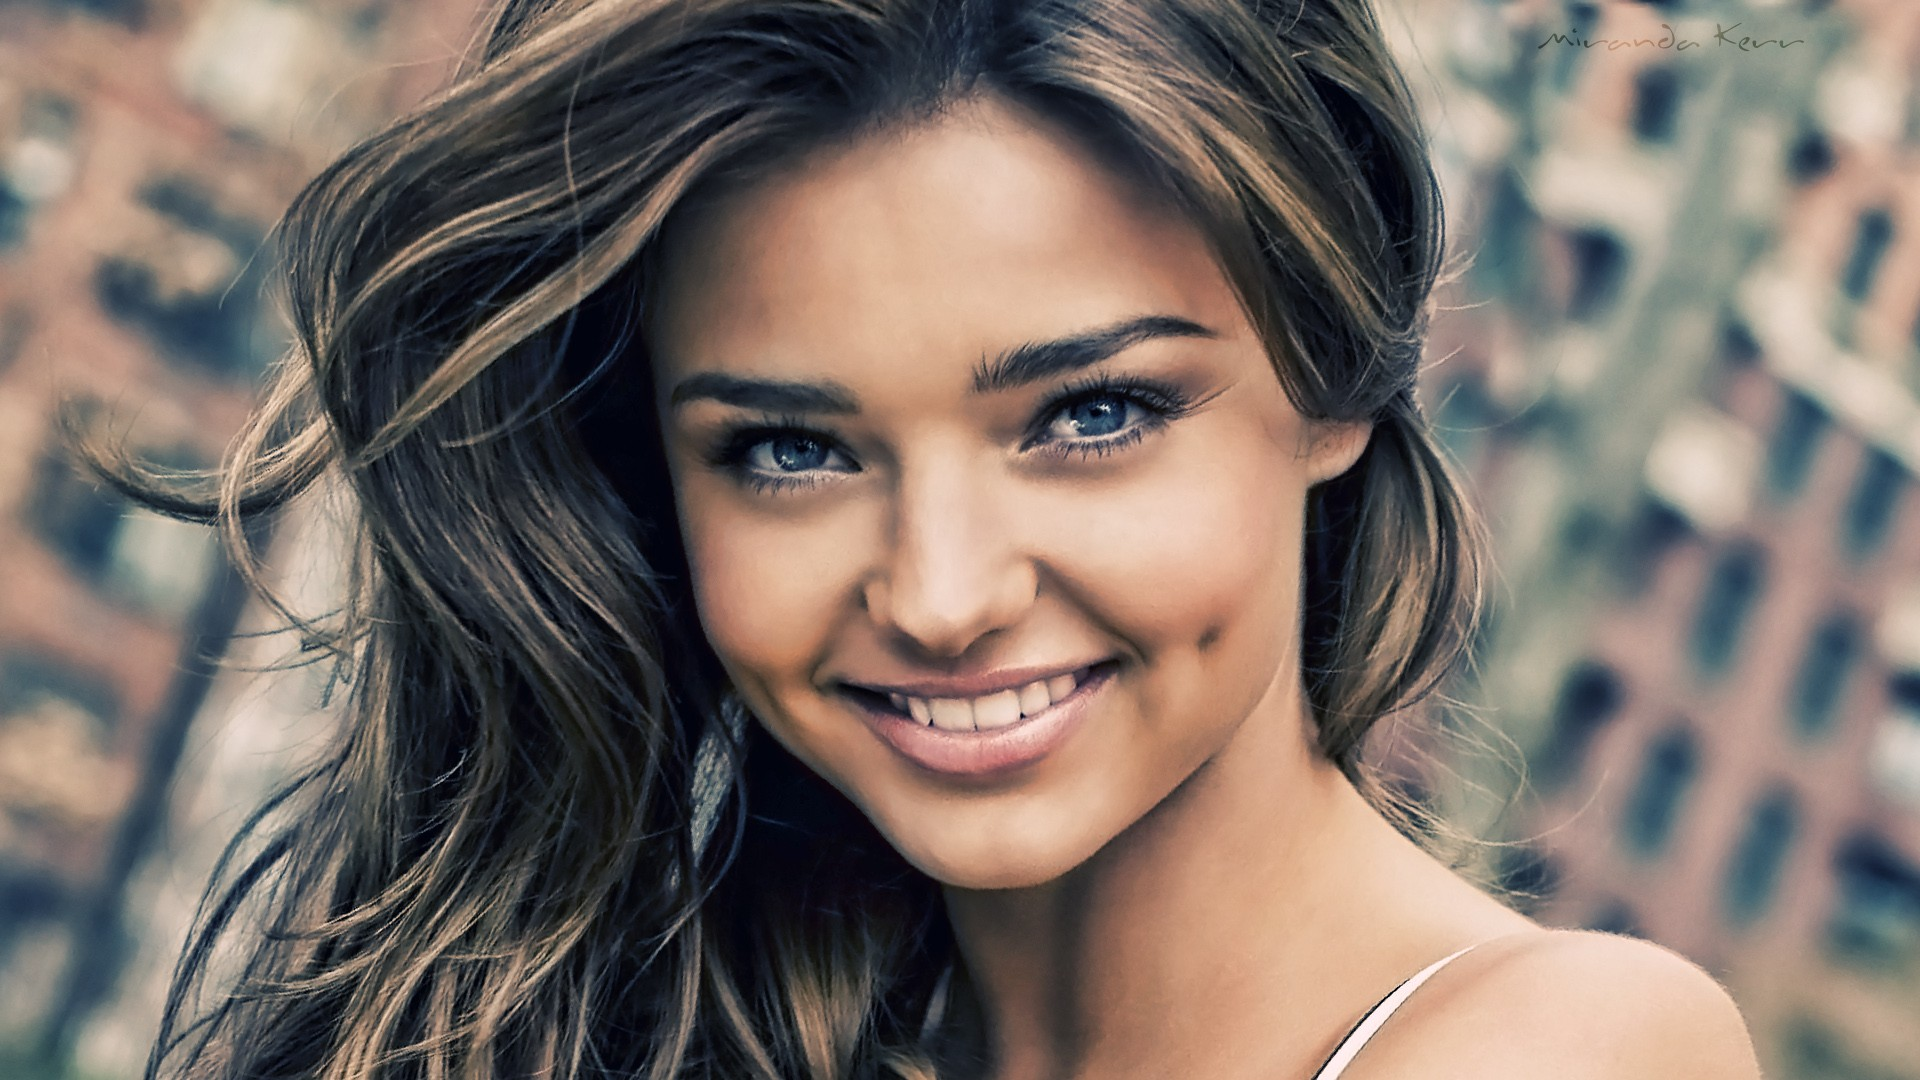 miranda kerr wallpaper girl - hd desktop wallpapers | 4k hd